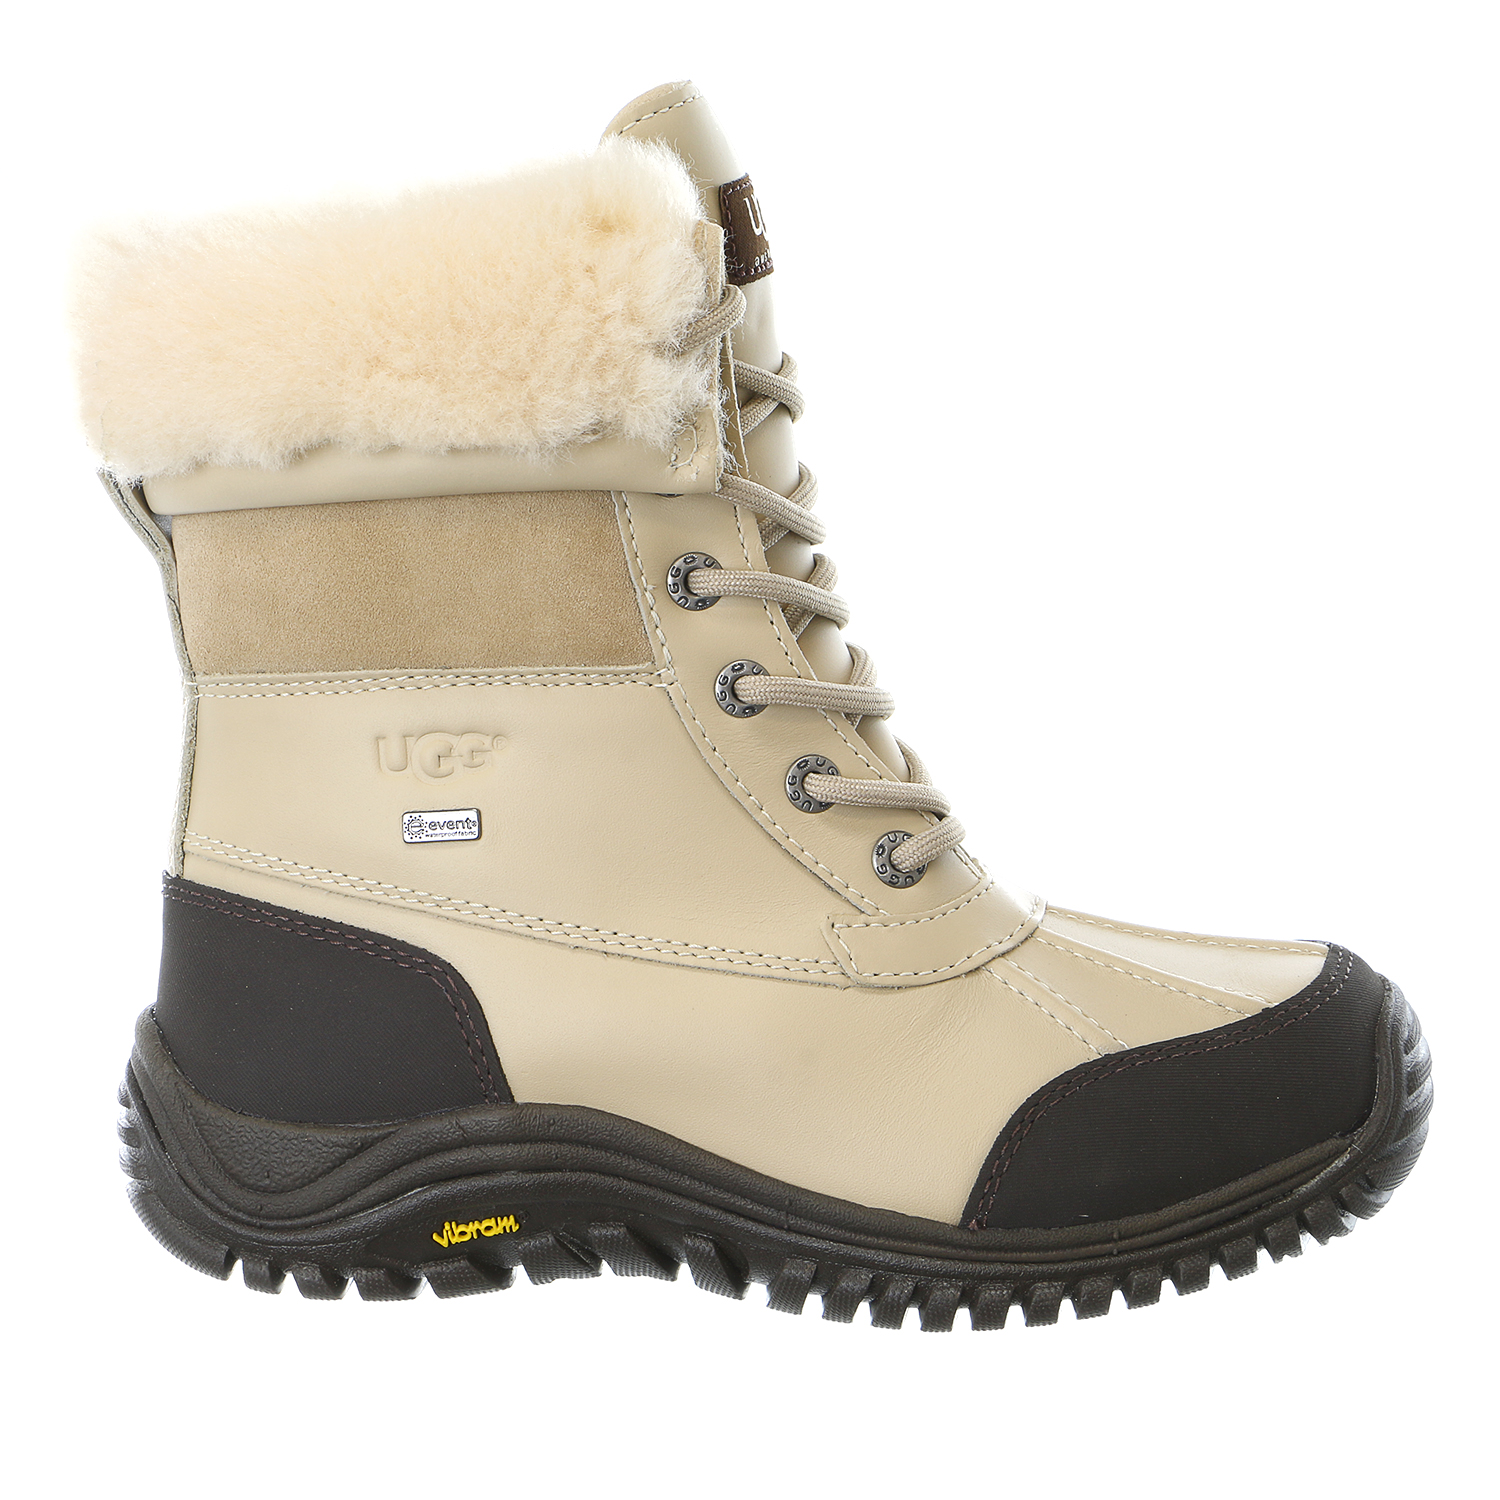 Women's UGG 'Adirondack II' Waterproof Boot, Size 7 M - Brown